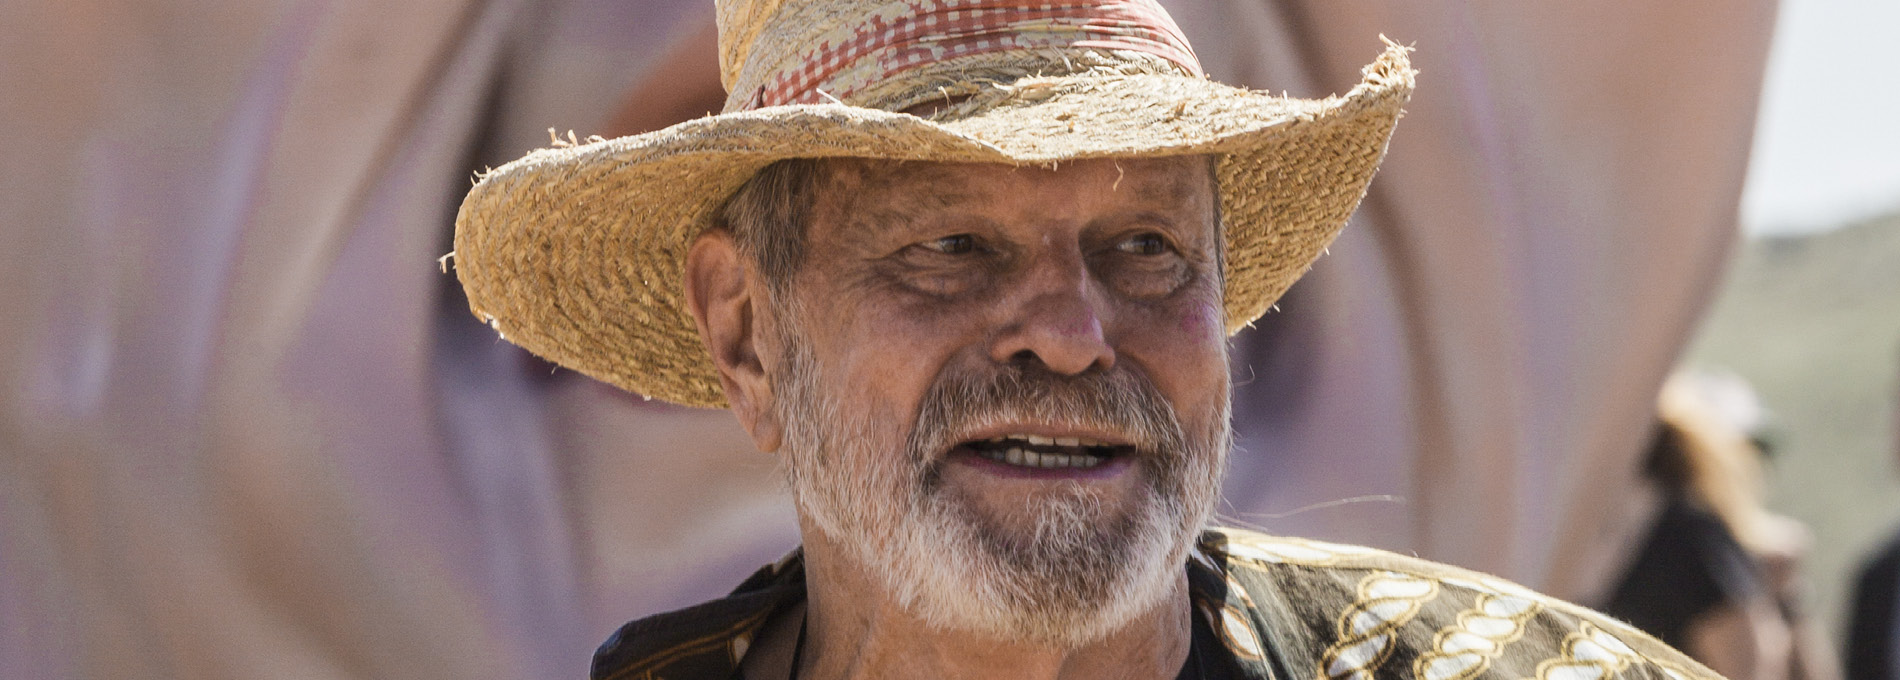 Terry Gilliam brigando com moinhos de vento